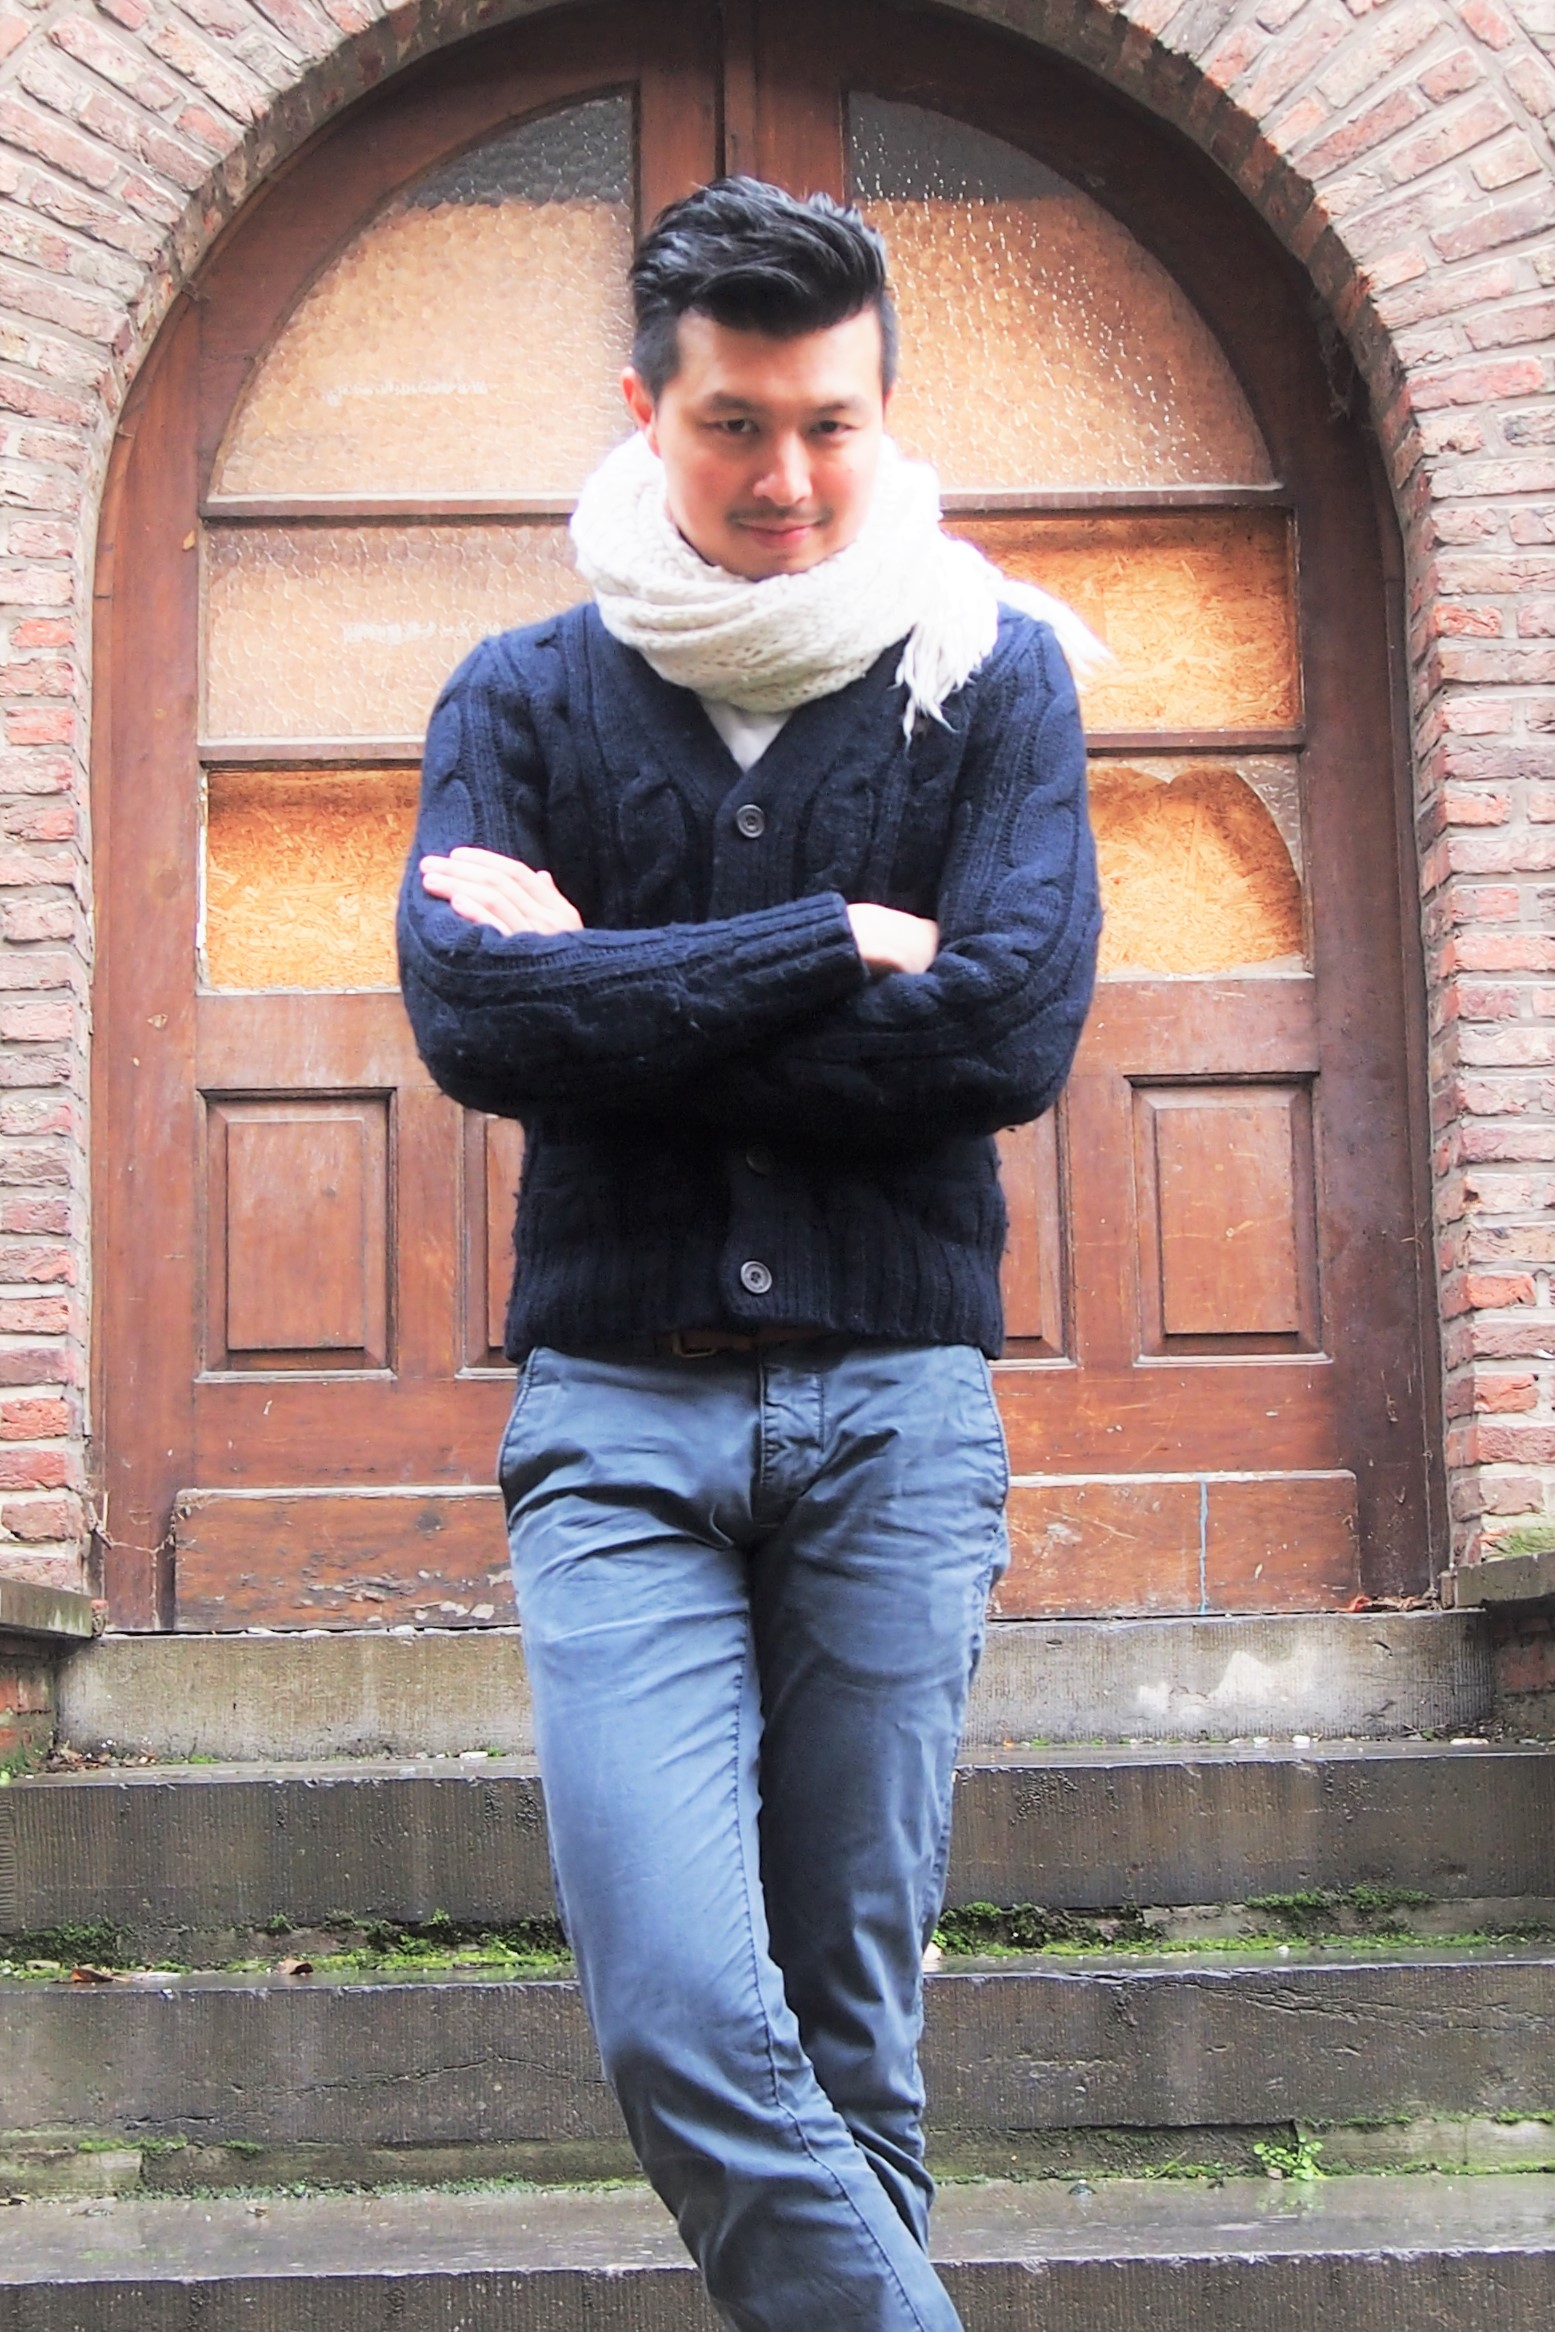 Carry It Like Harry - Wintertime: how to stay warm with layering